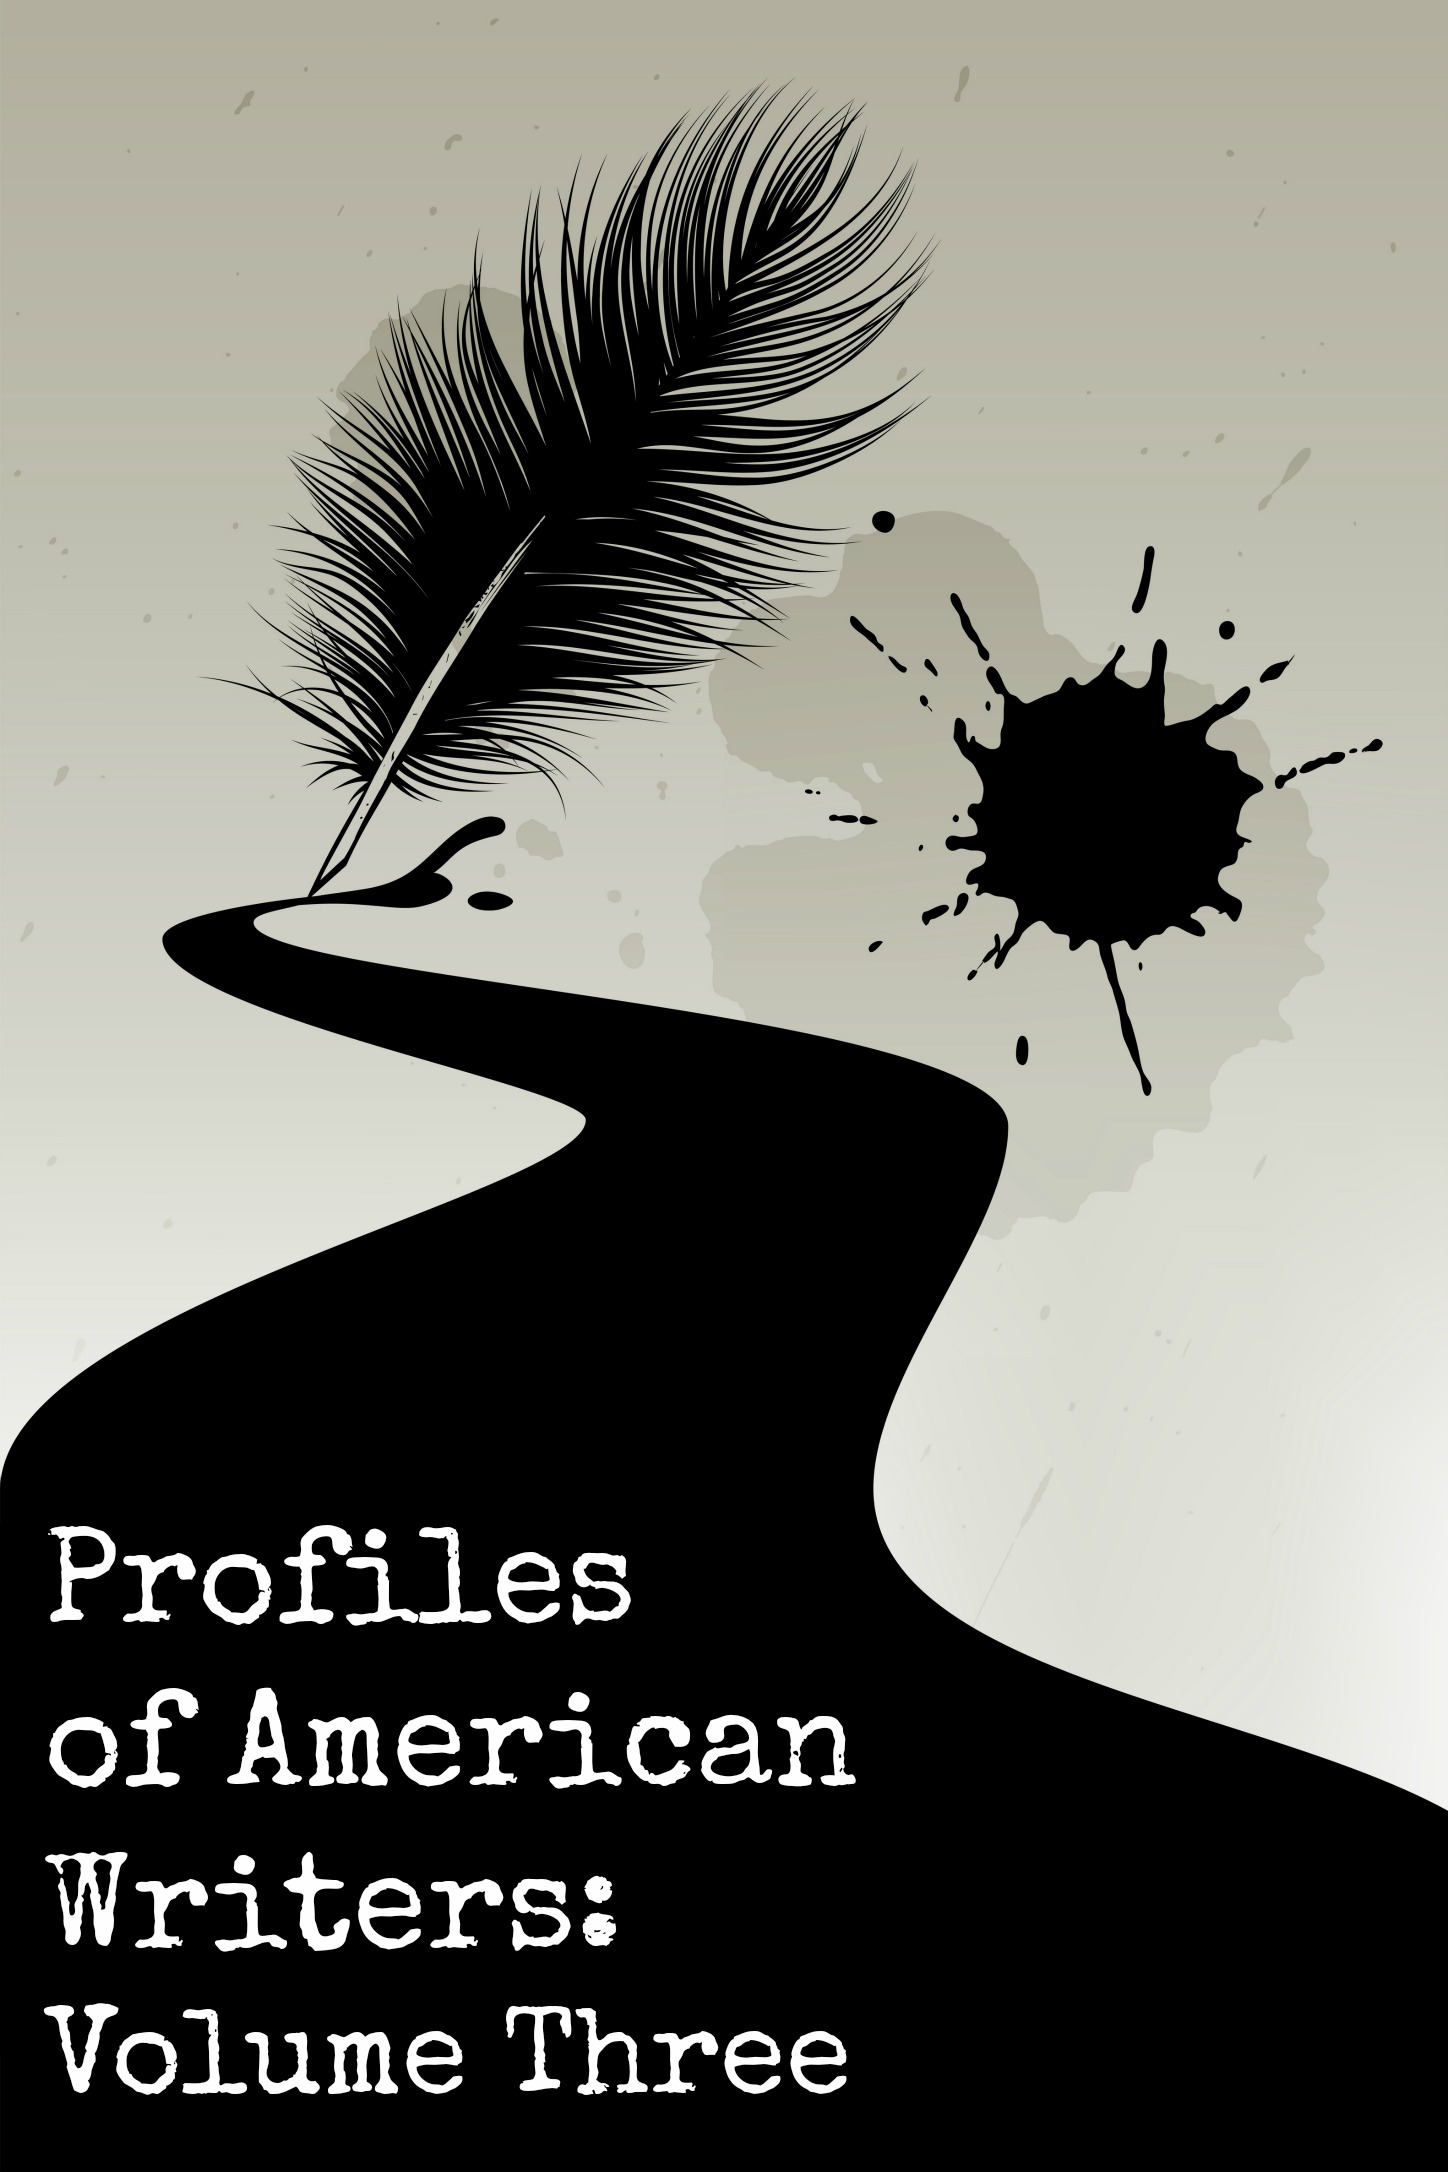 Profiles of American Writers